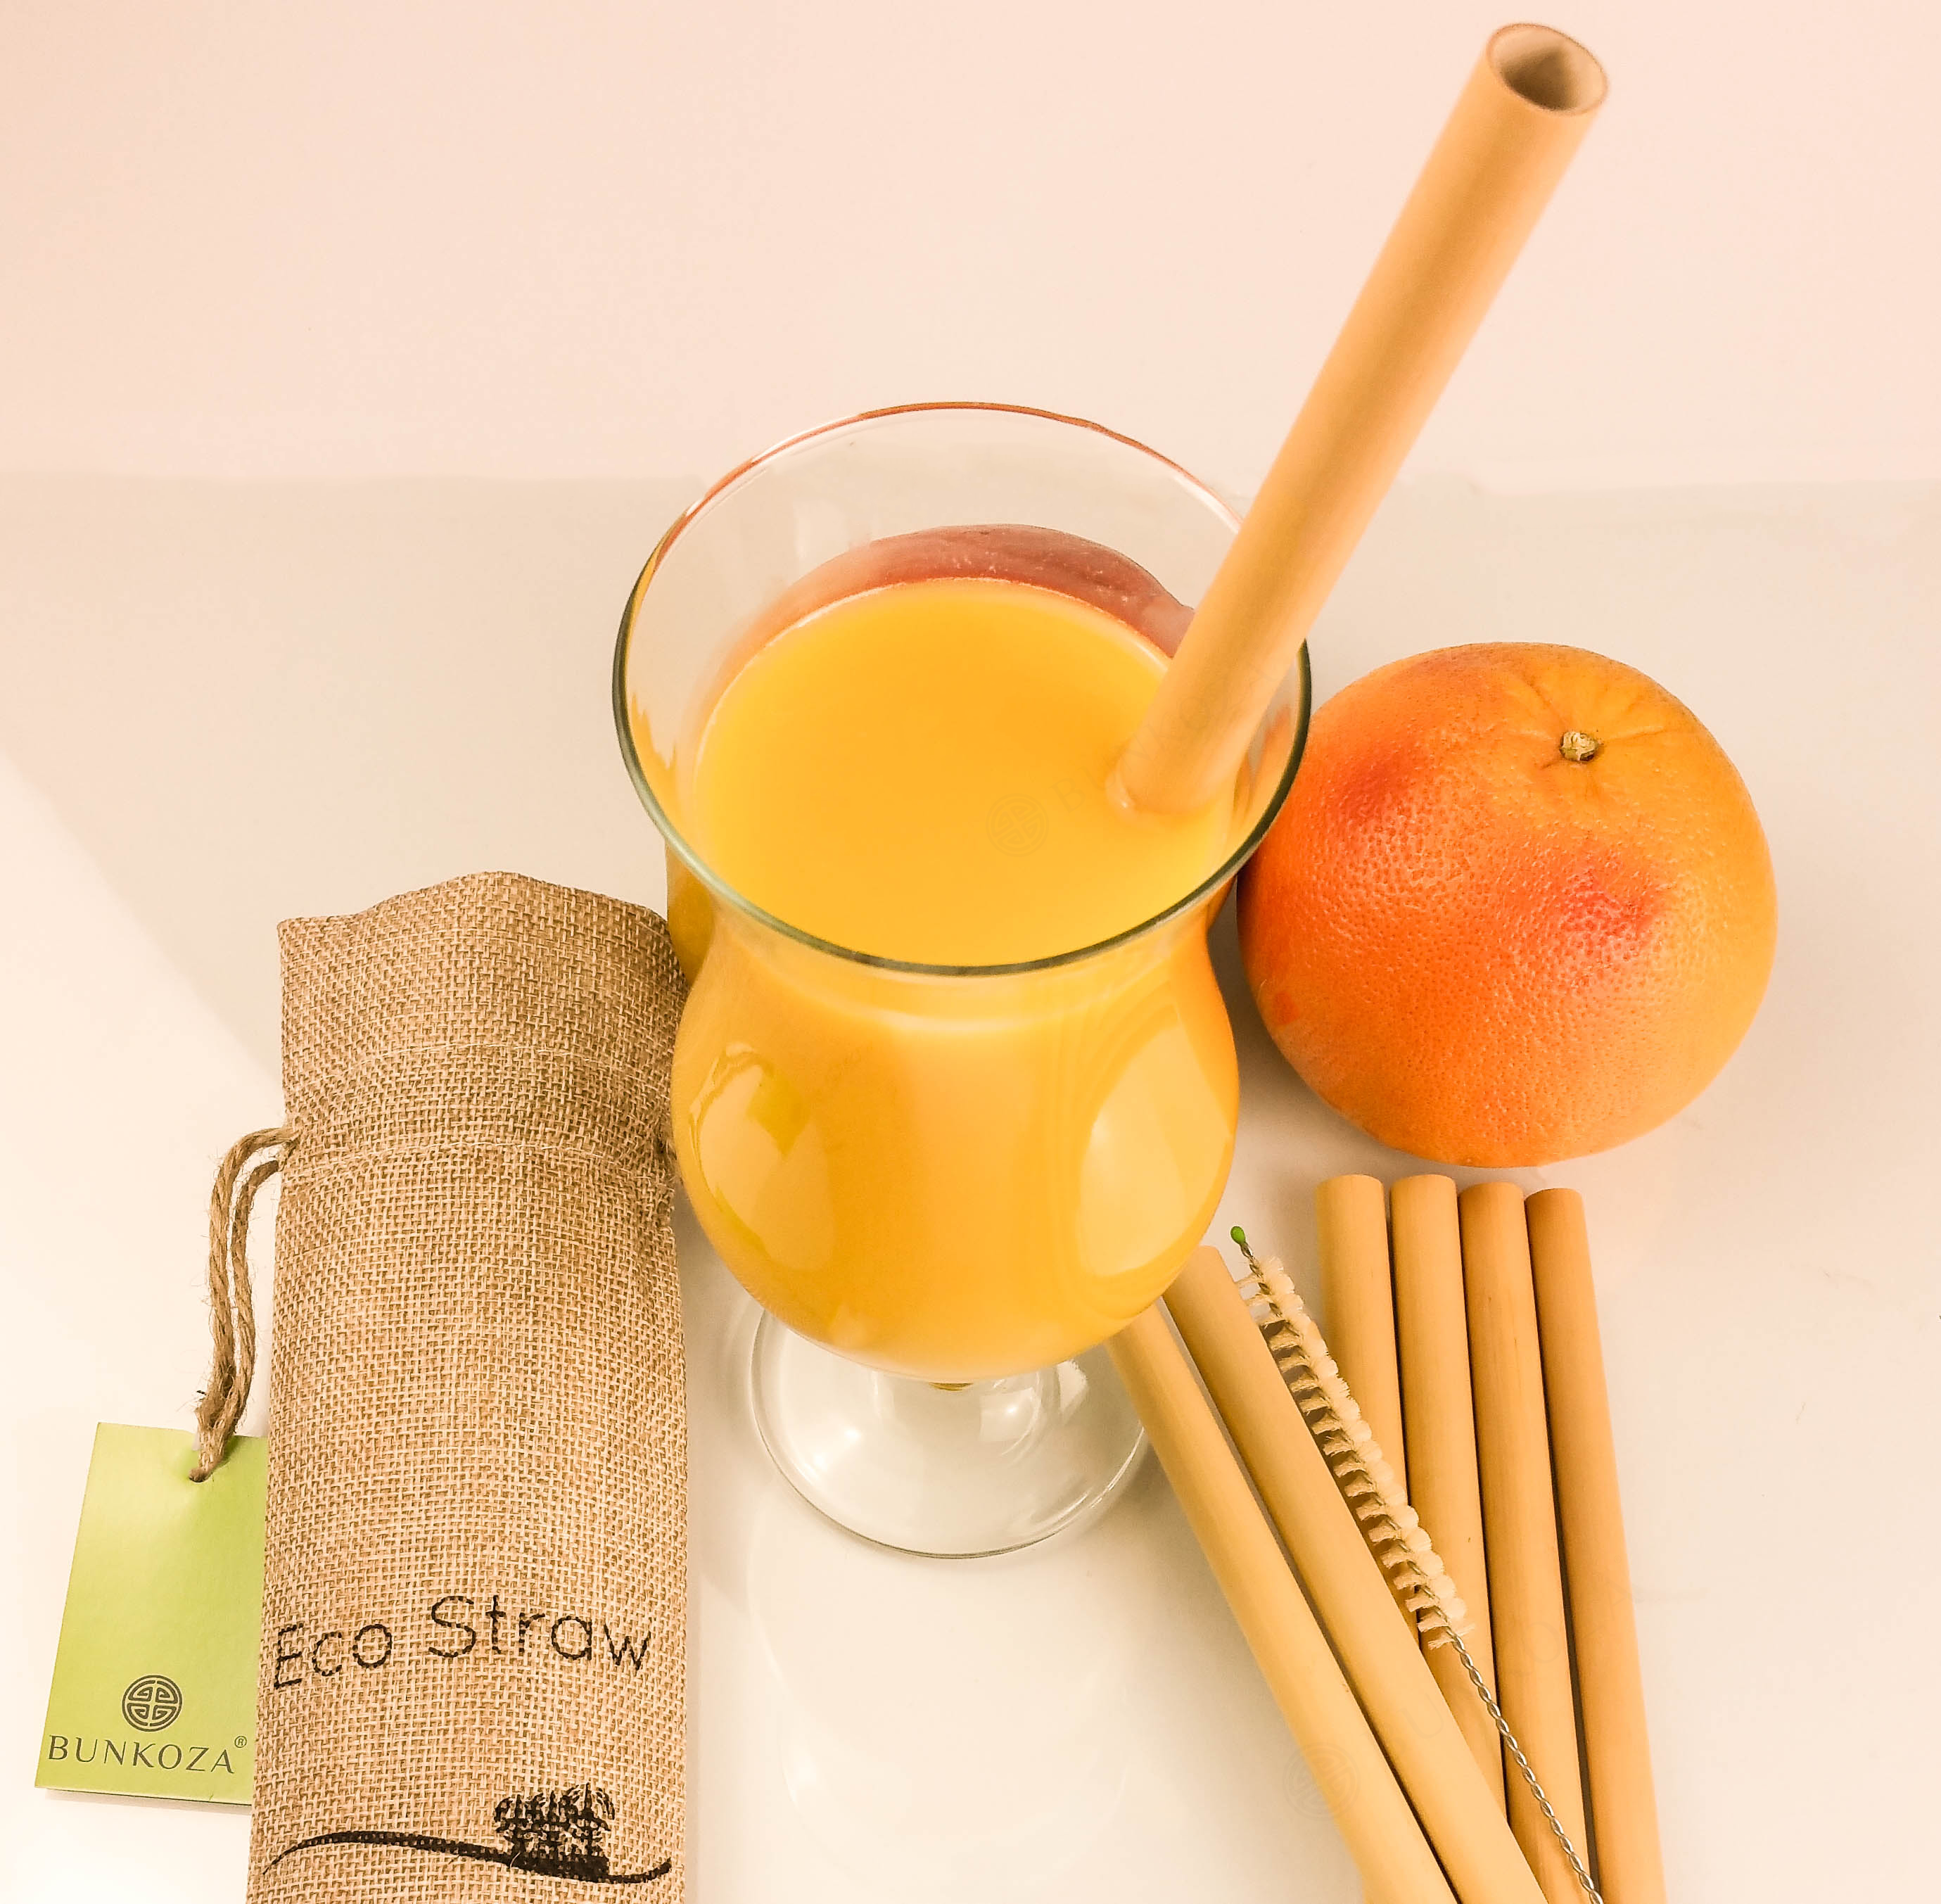 Image from Eco Straws